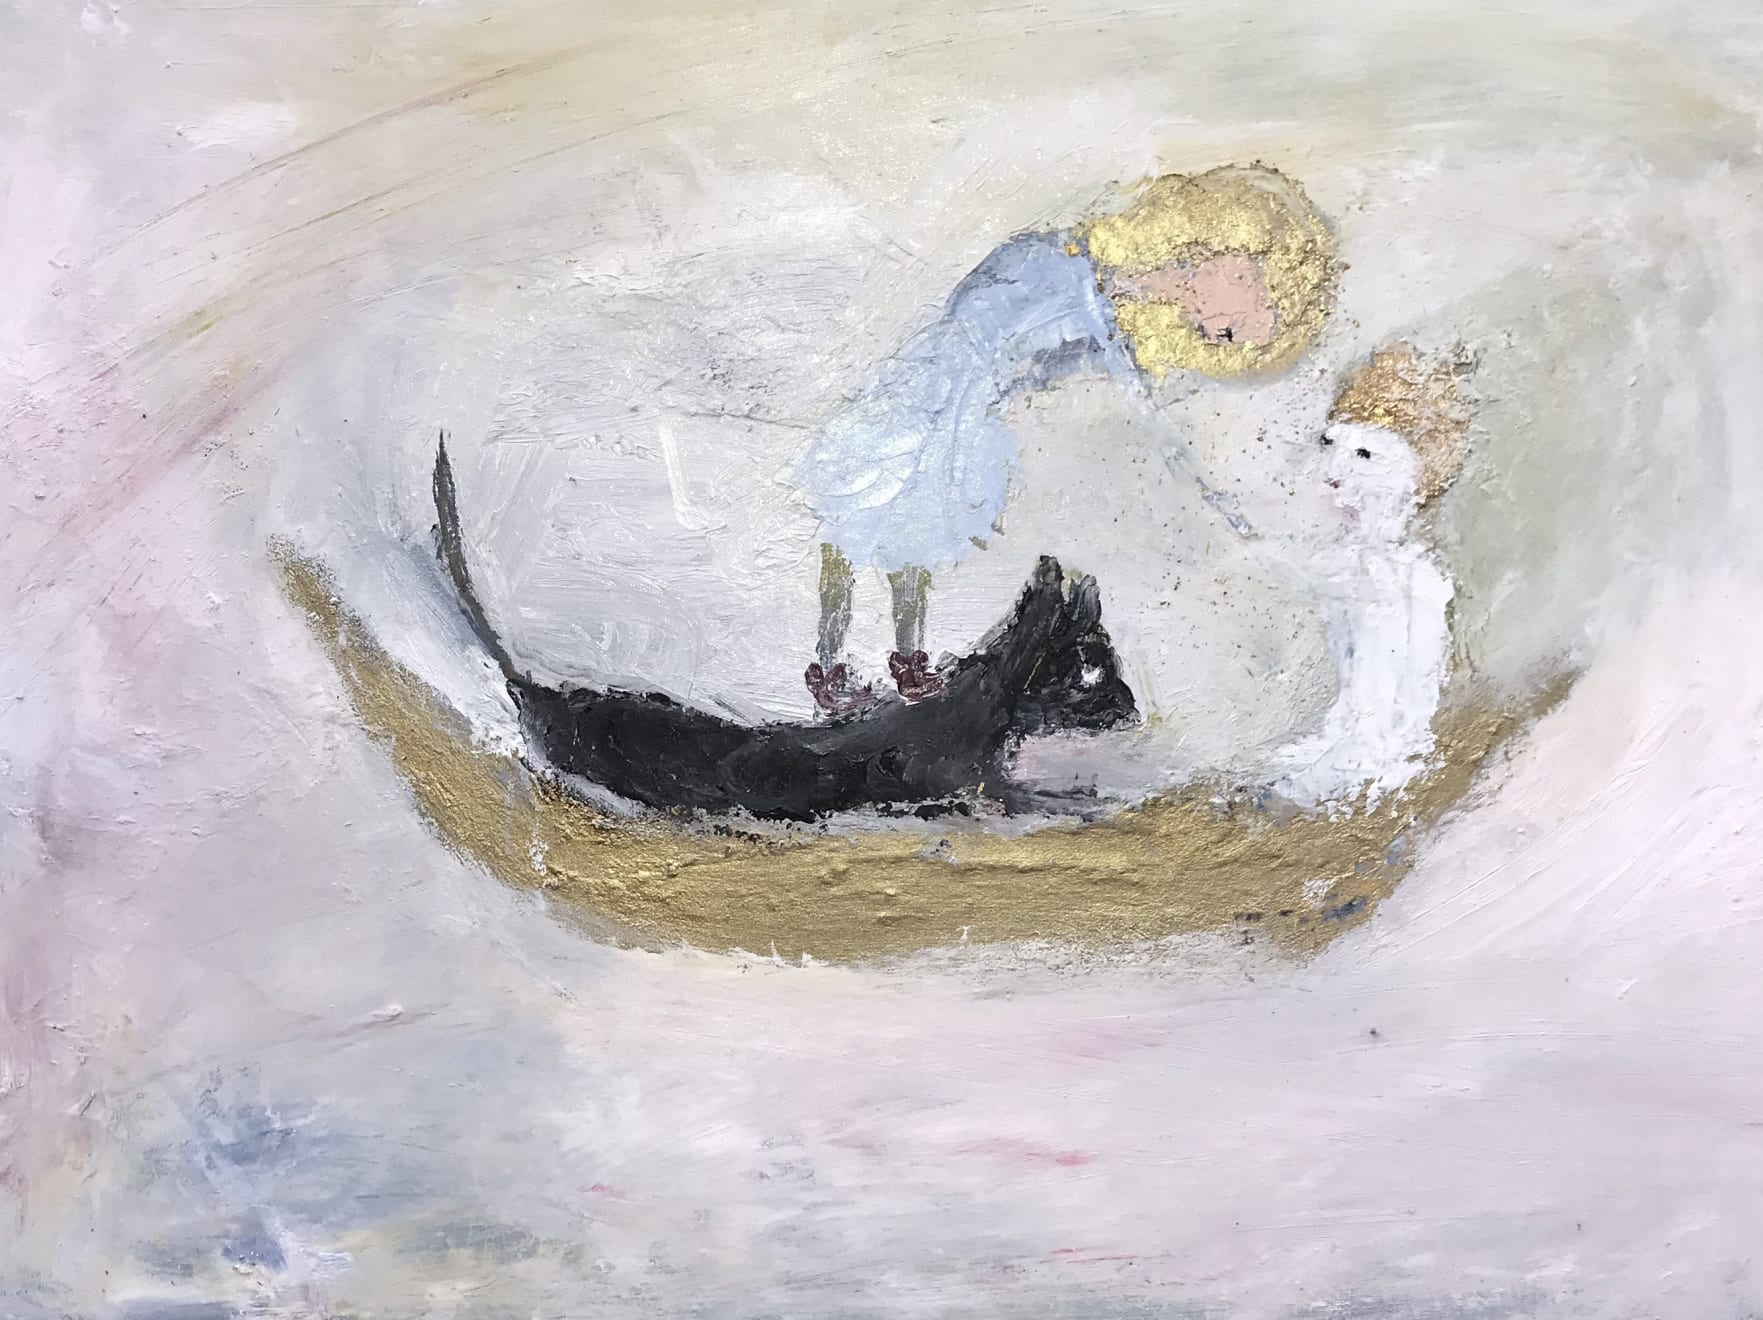 Hilary Herrmann A Measured Sea Oil on Canvas, Gold Leaf and Gold Pigment Original 60 x 45 cm $1800 £900 SOLD